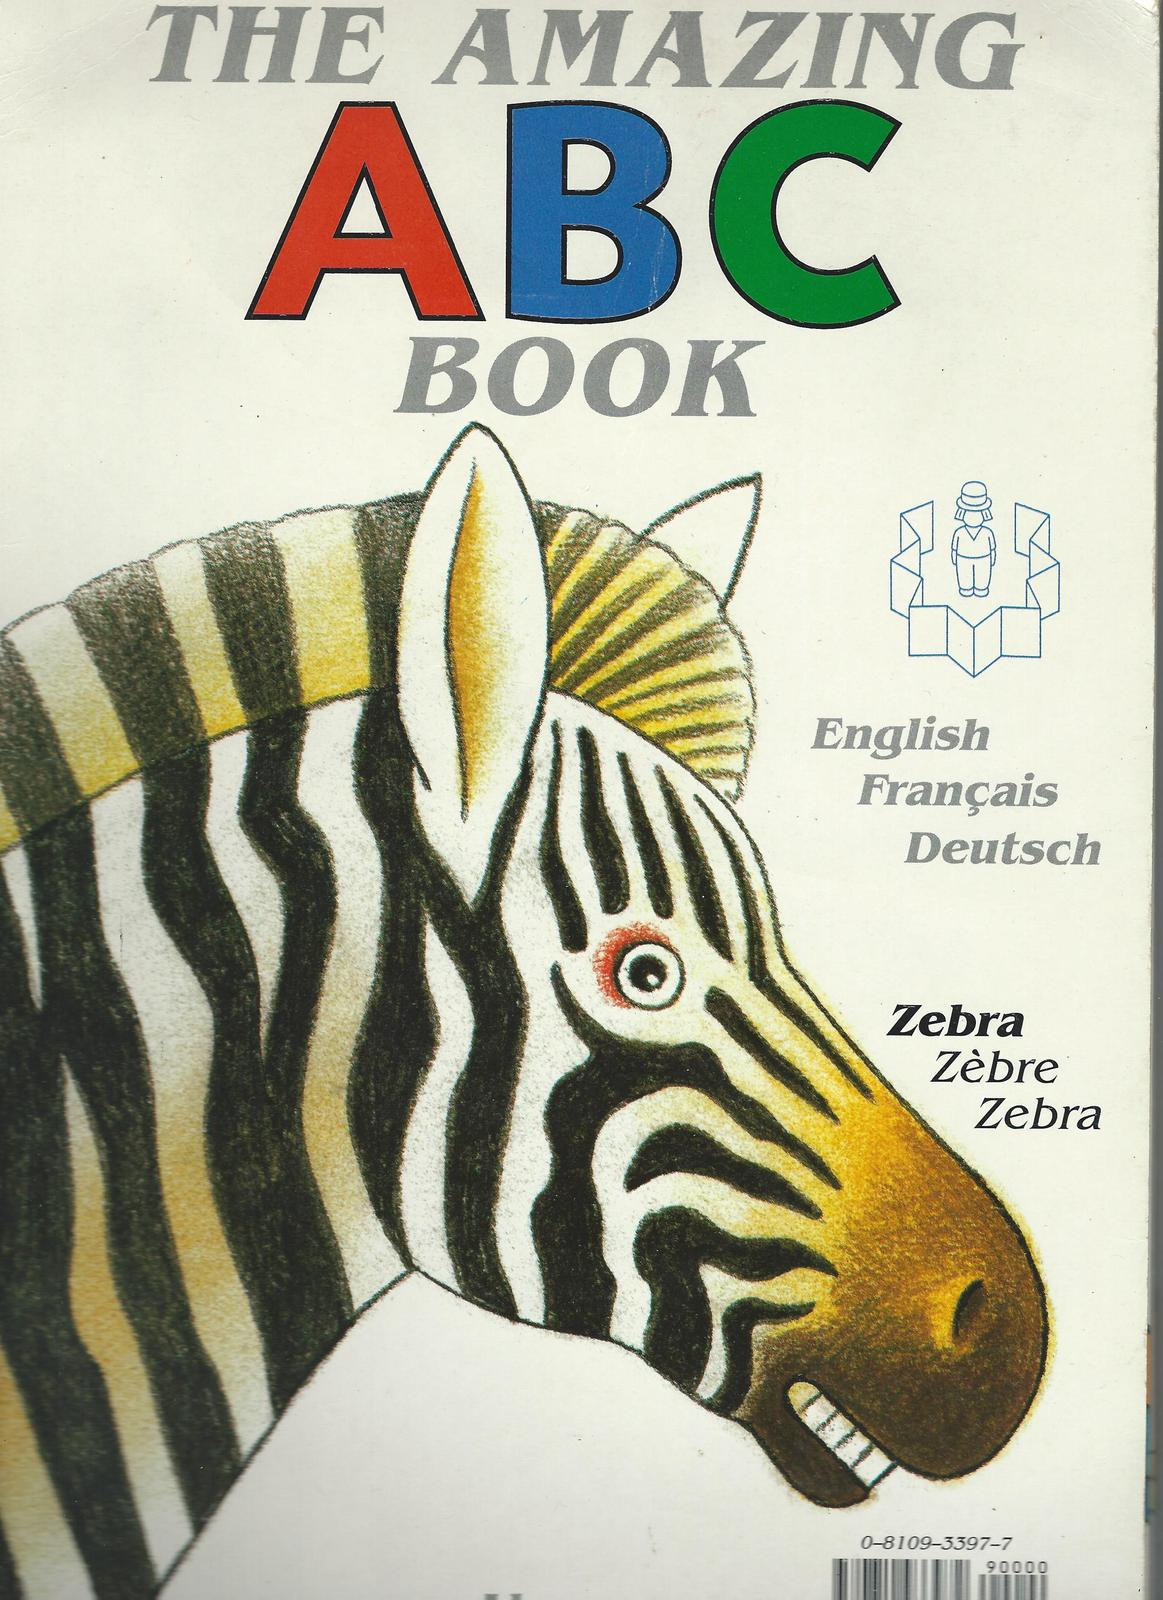 The Amazing ABC Book-Josse Goffin-English-French-German;large FOLD-OUT Board pag